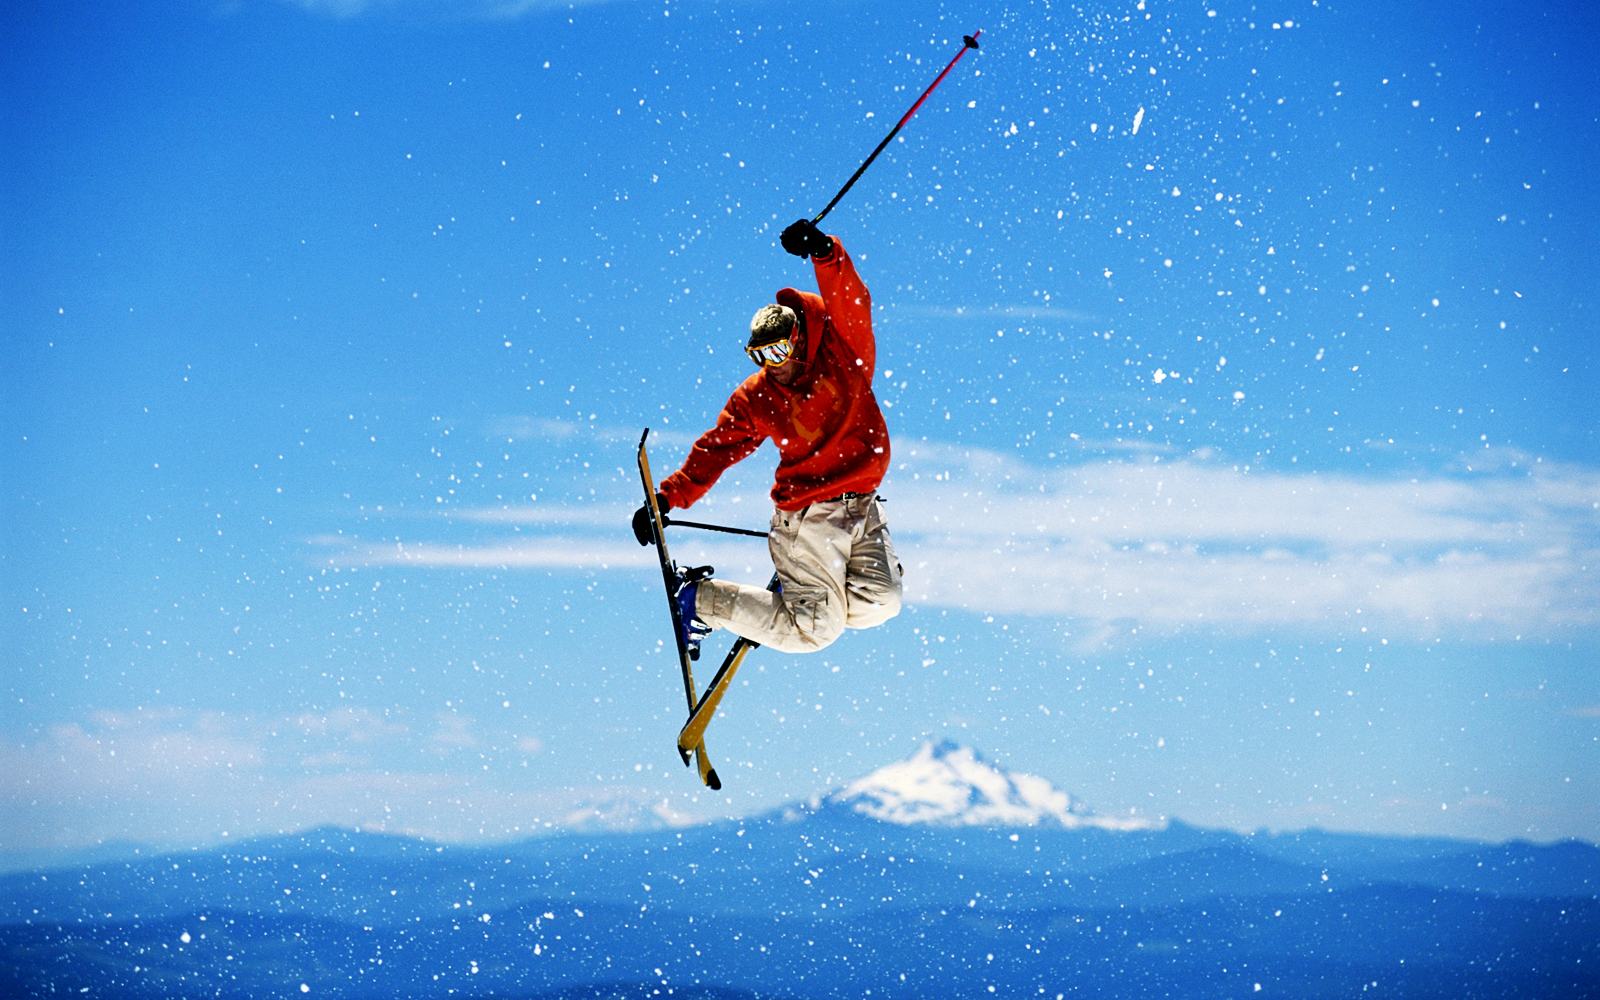 Skiing Winter Sports HD Wallpapers| HD Wallpapers ...